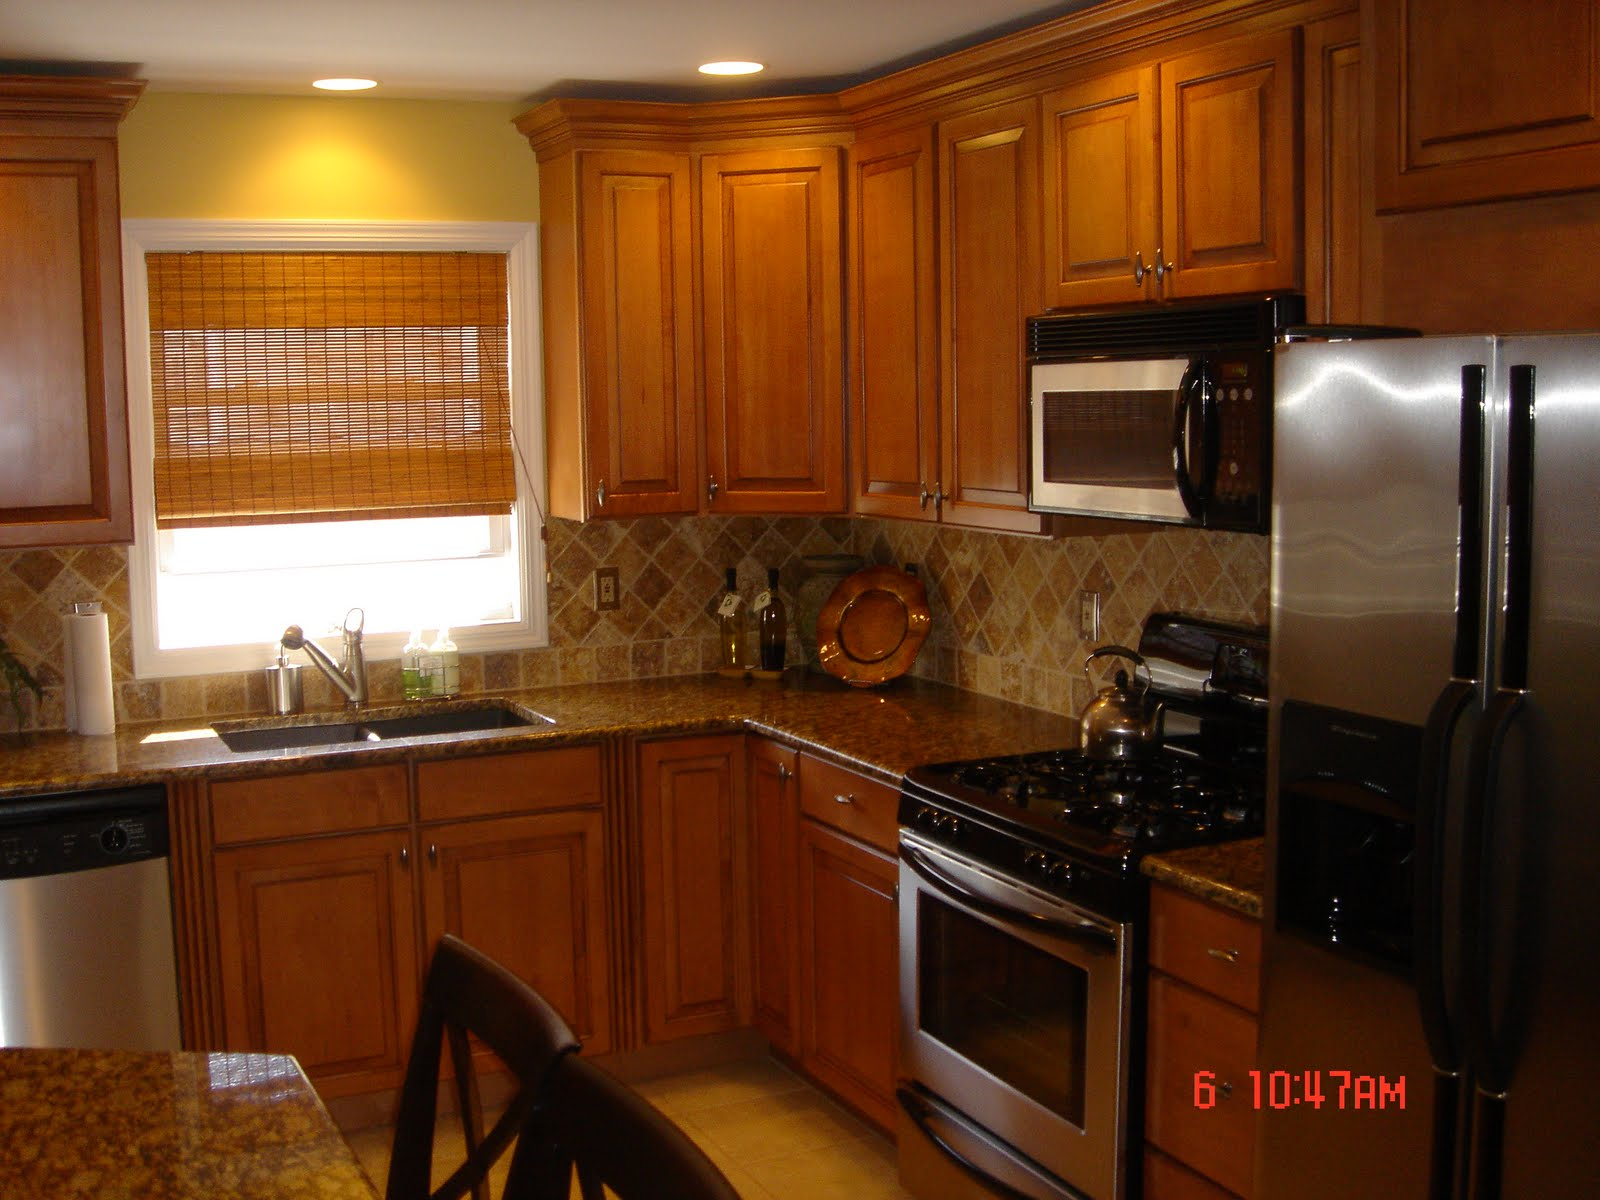 kitchen makeover ideas on These cabinets look much more